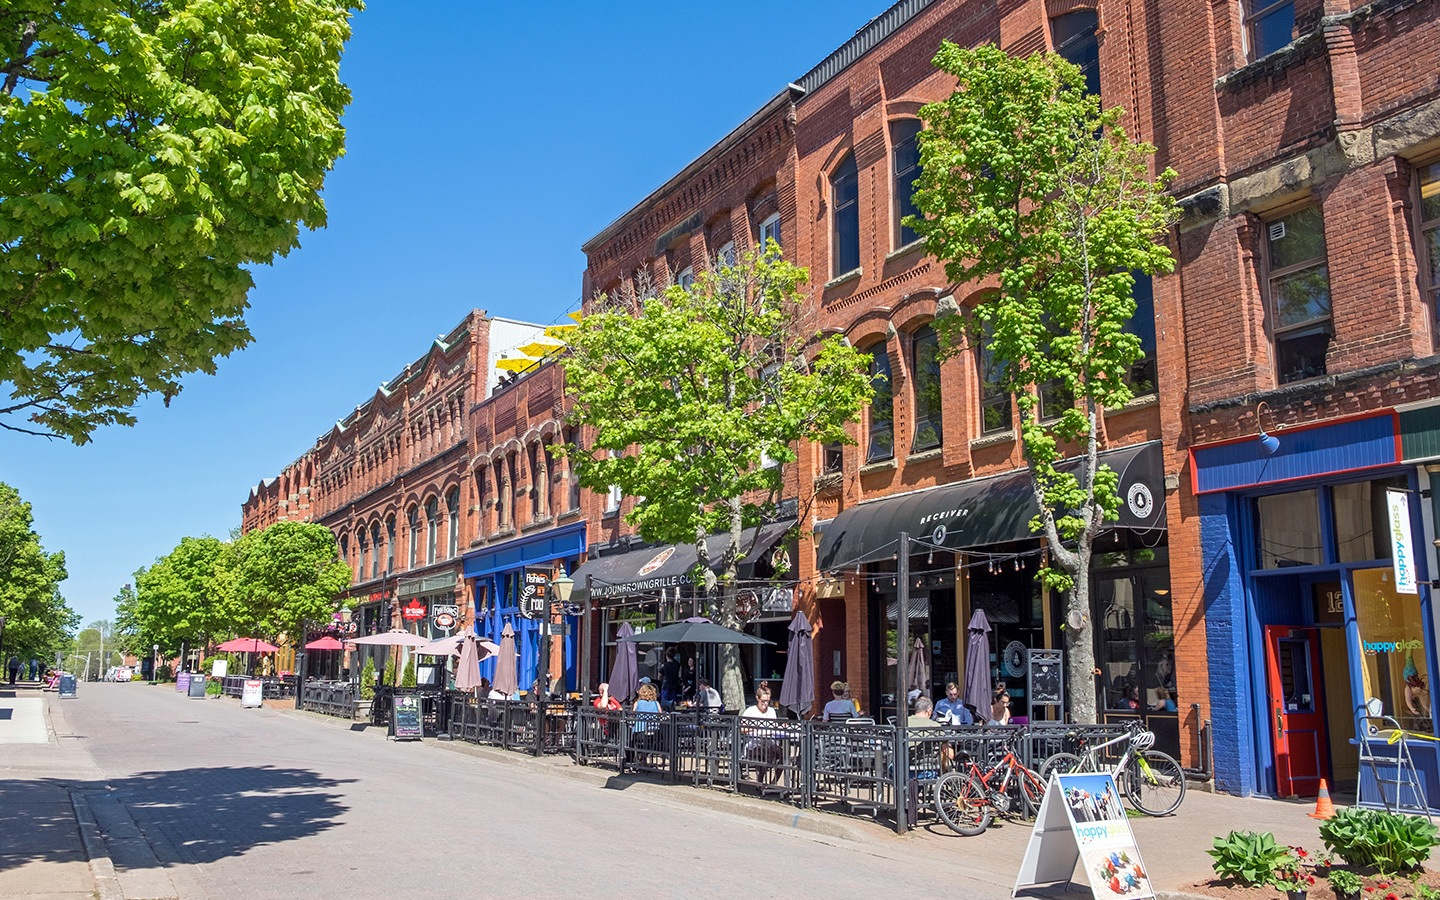 48 hours: A weekender's guide to Charlottetown, Prince Edward Island